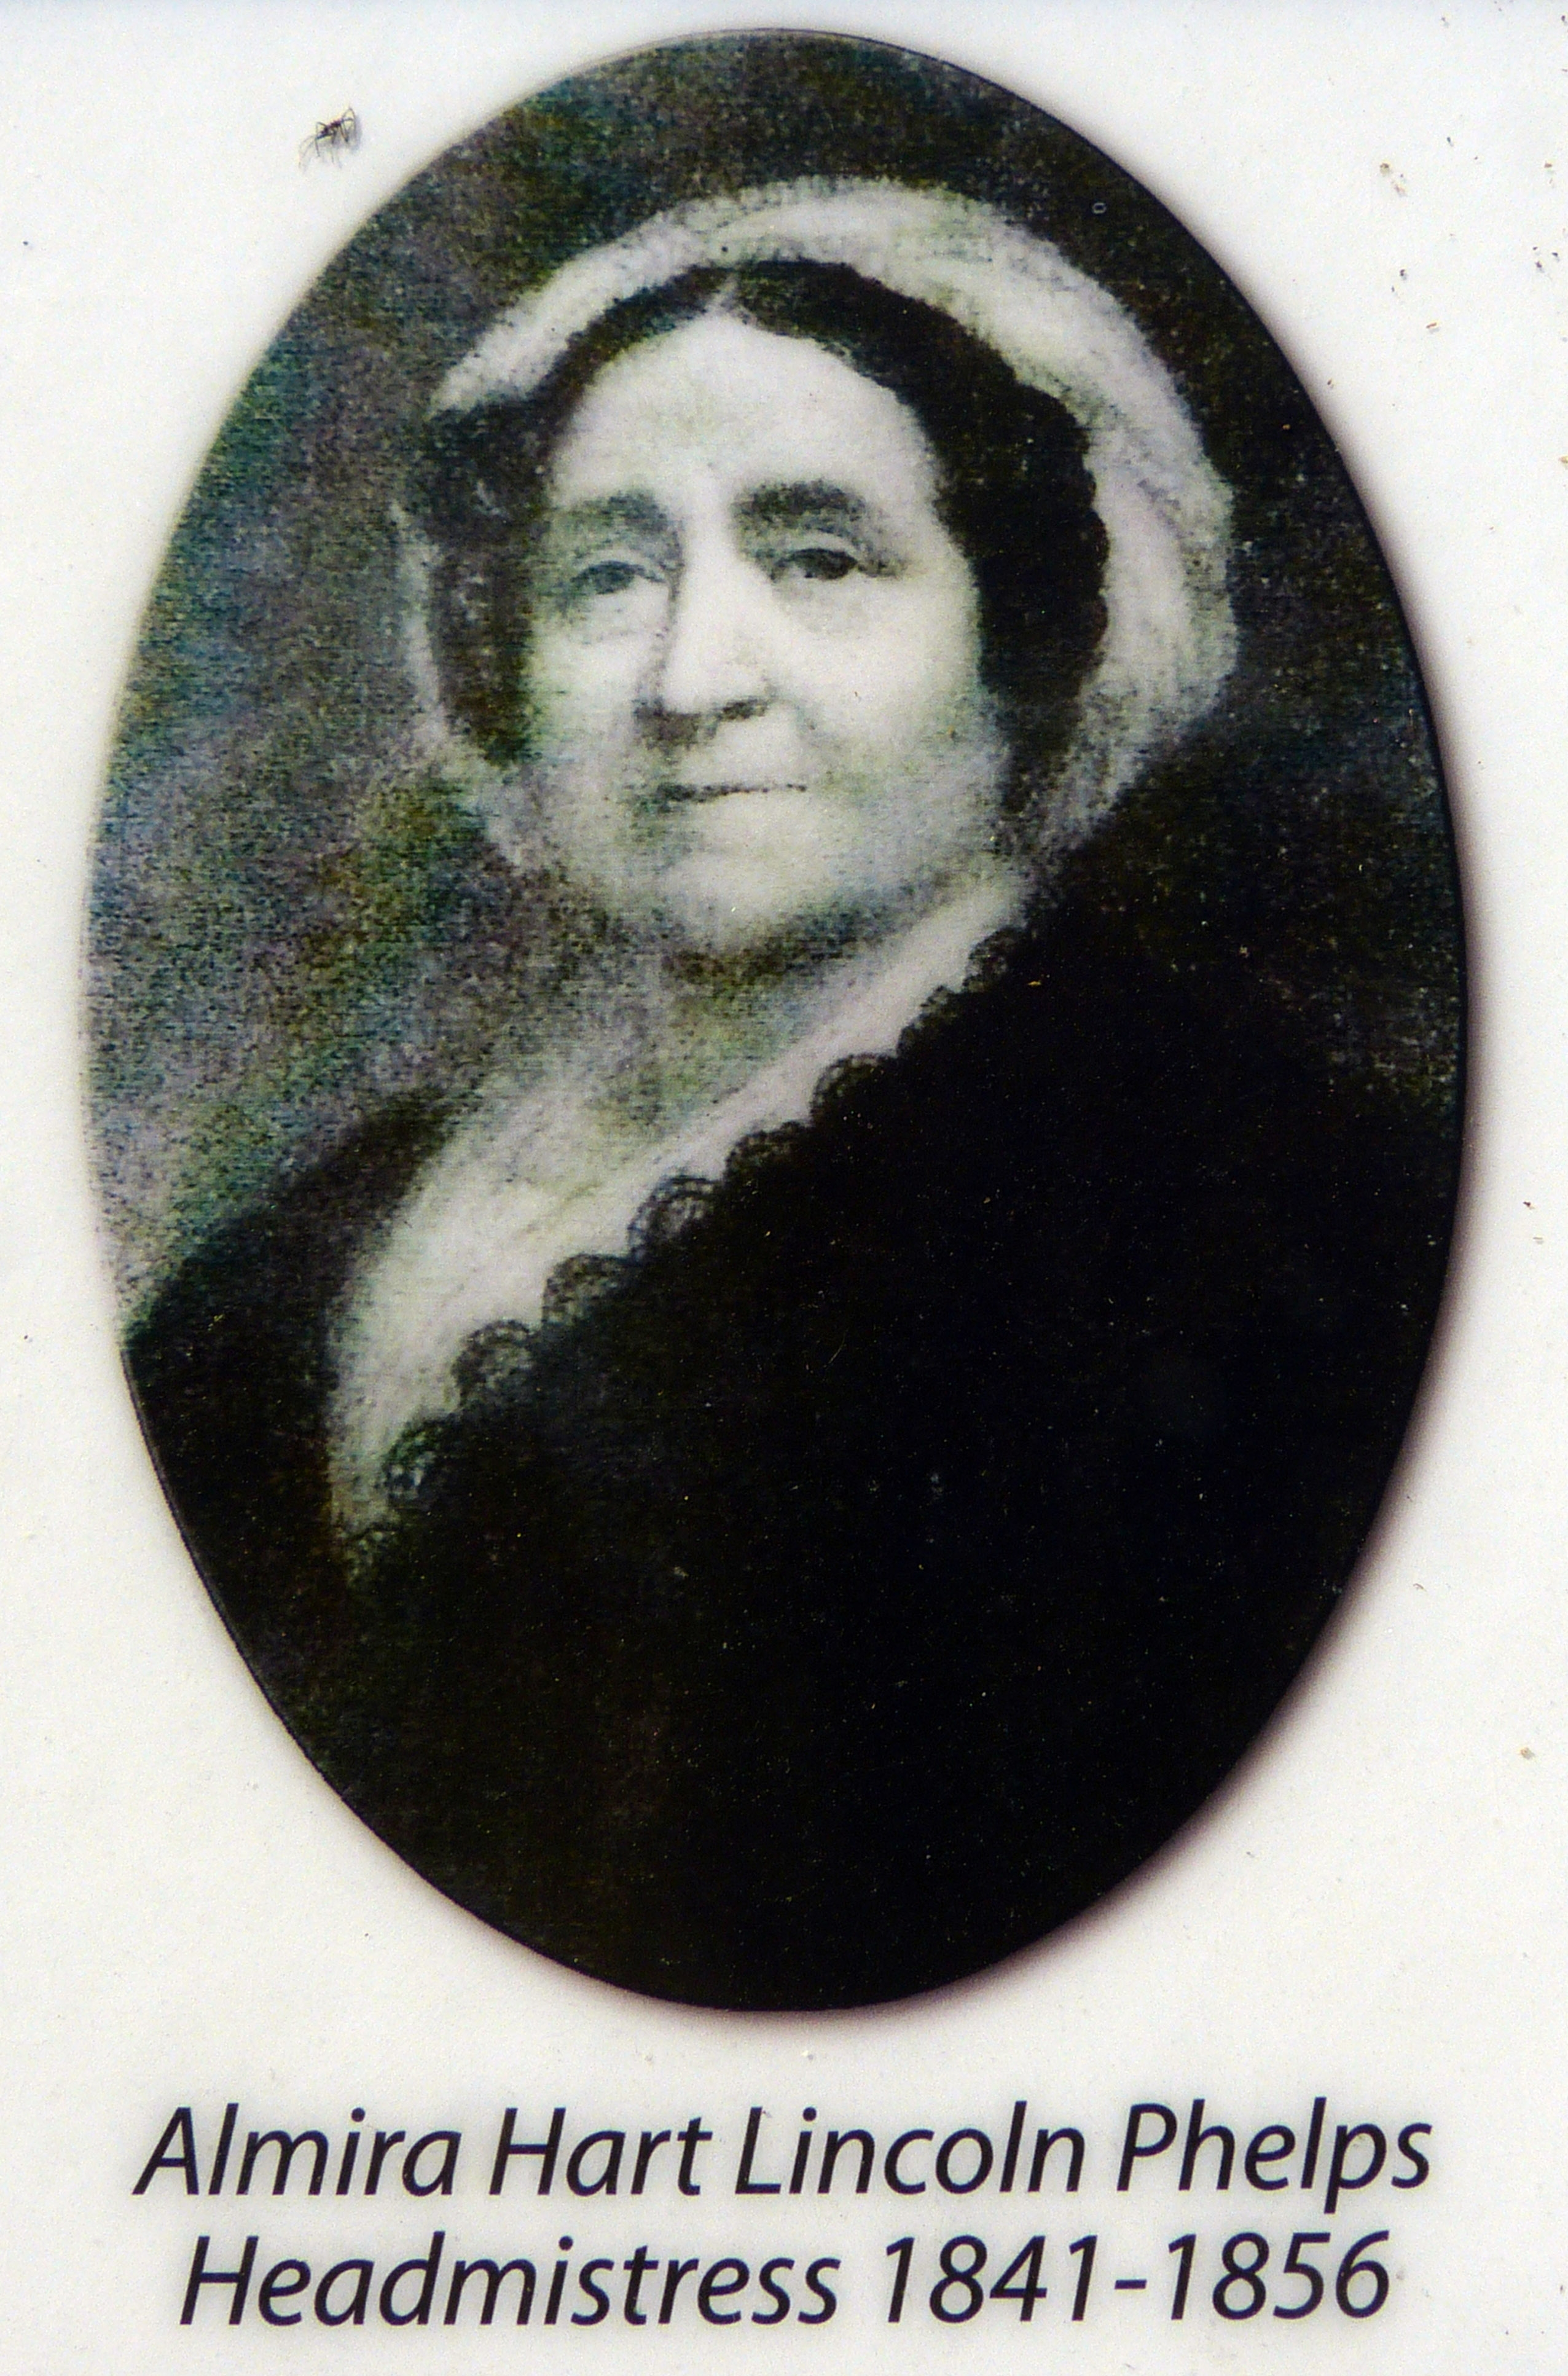 Almira Hart Lincoln Phelps<br>Headmistress 1841-1856